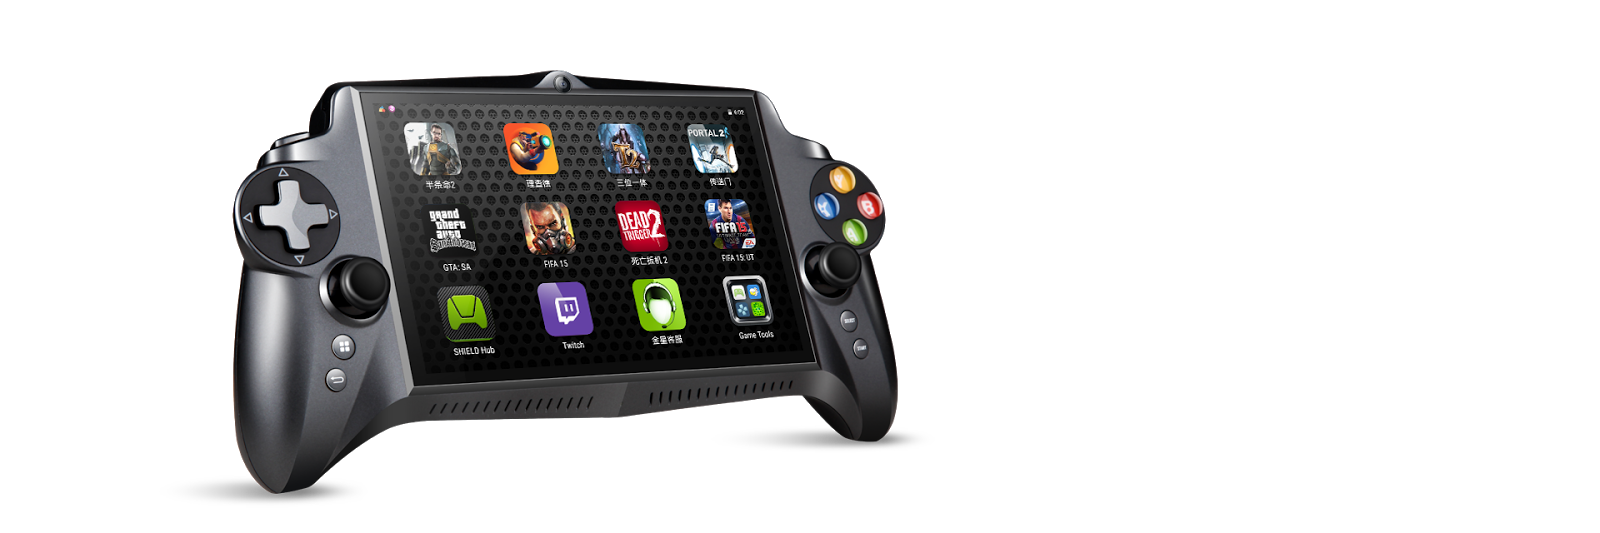 PS Vita Roundup: JXD's Singularity handheld console has